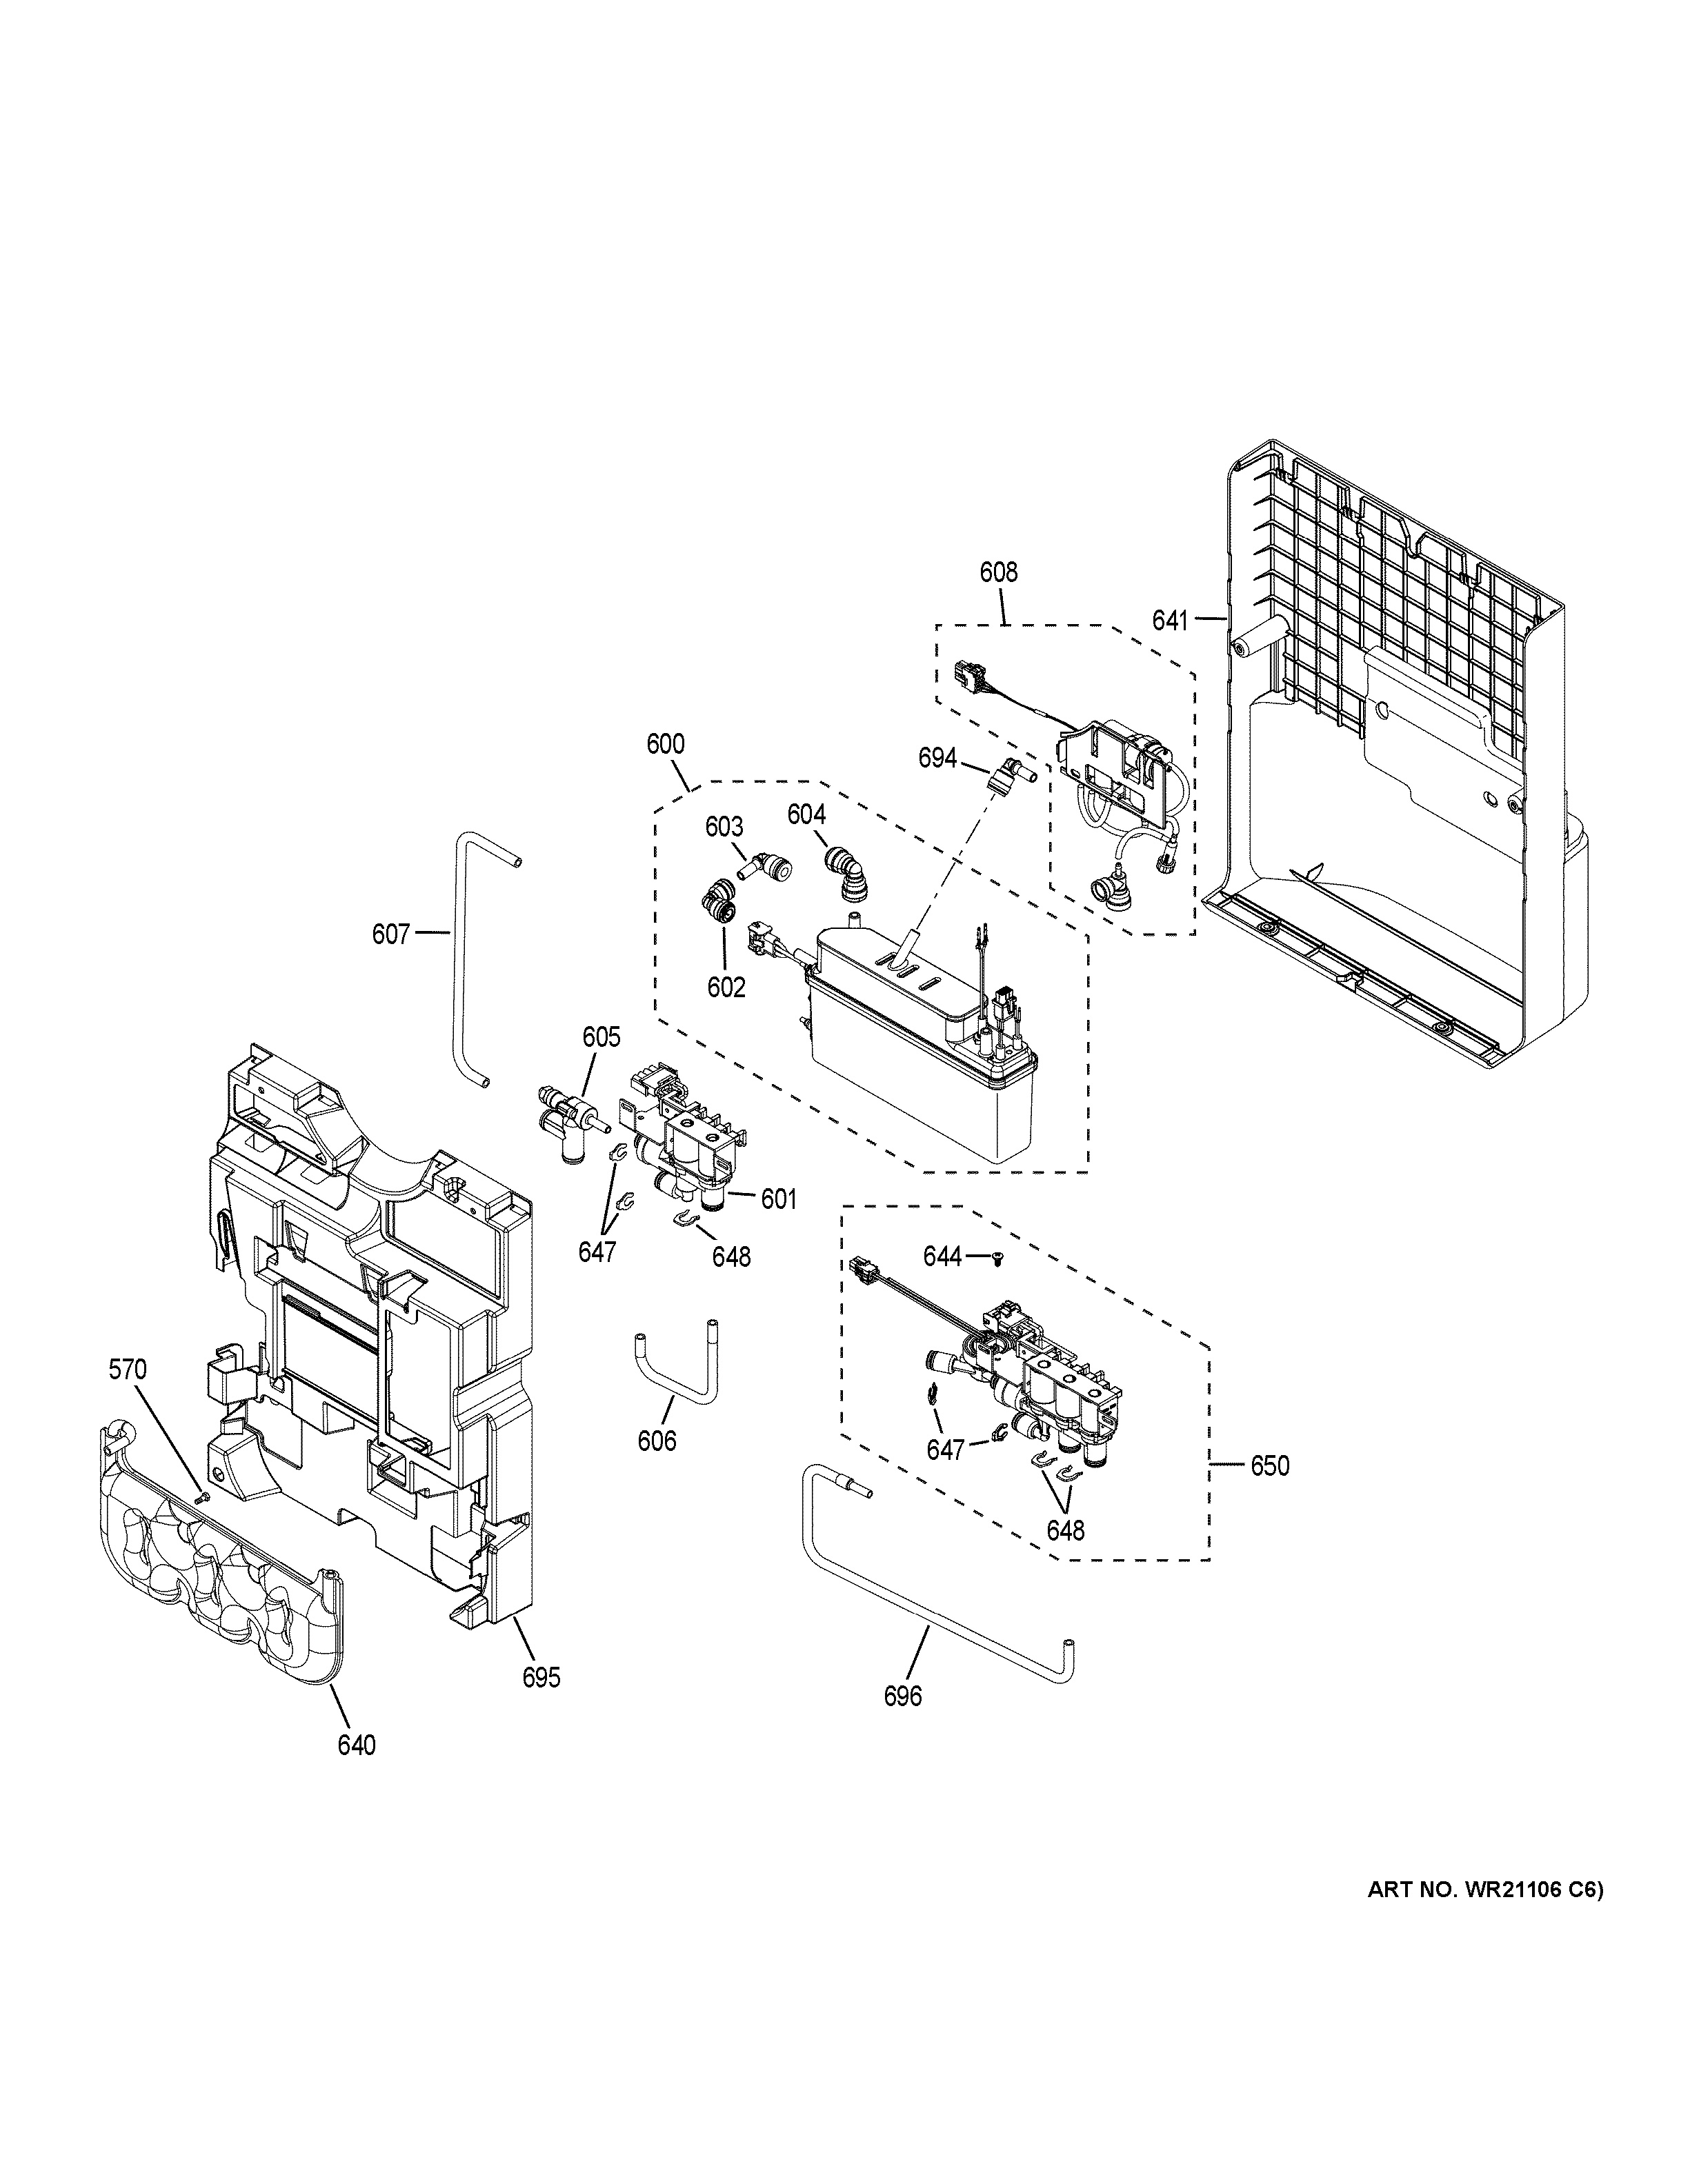 Assembly View For Beverage Dispenser